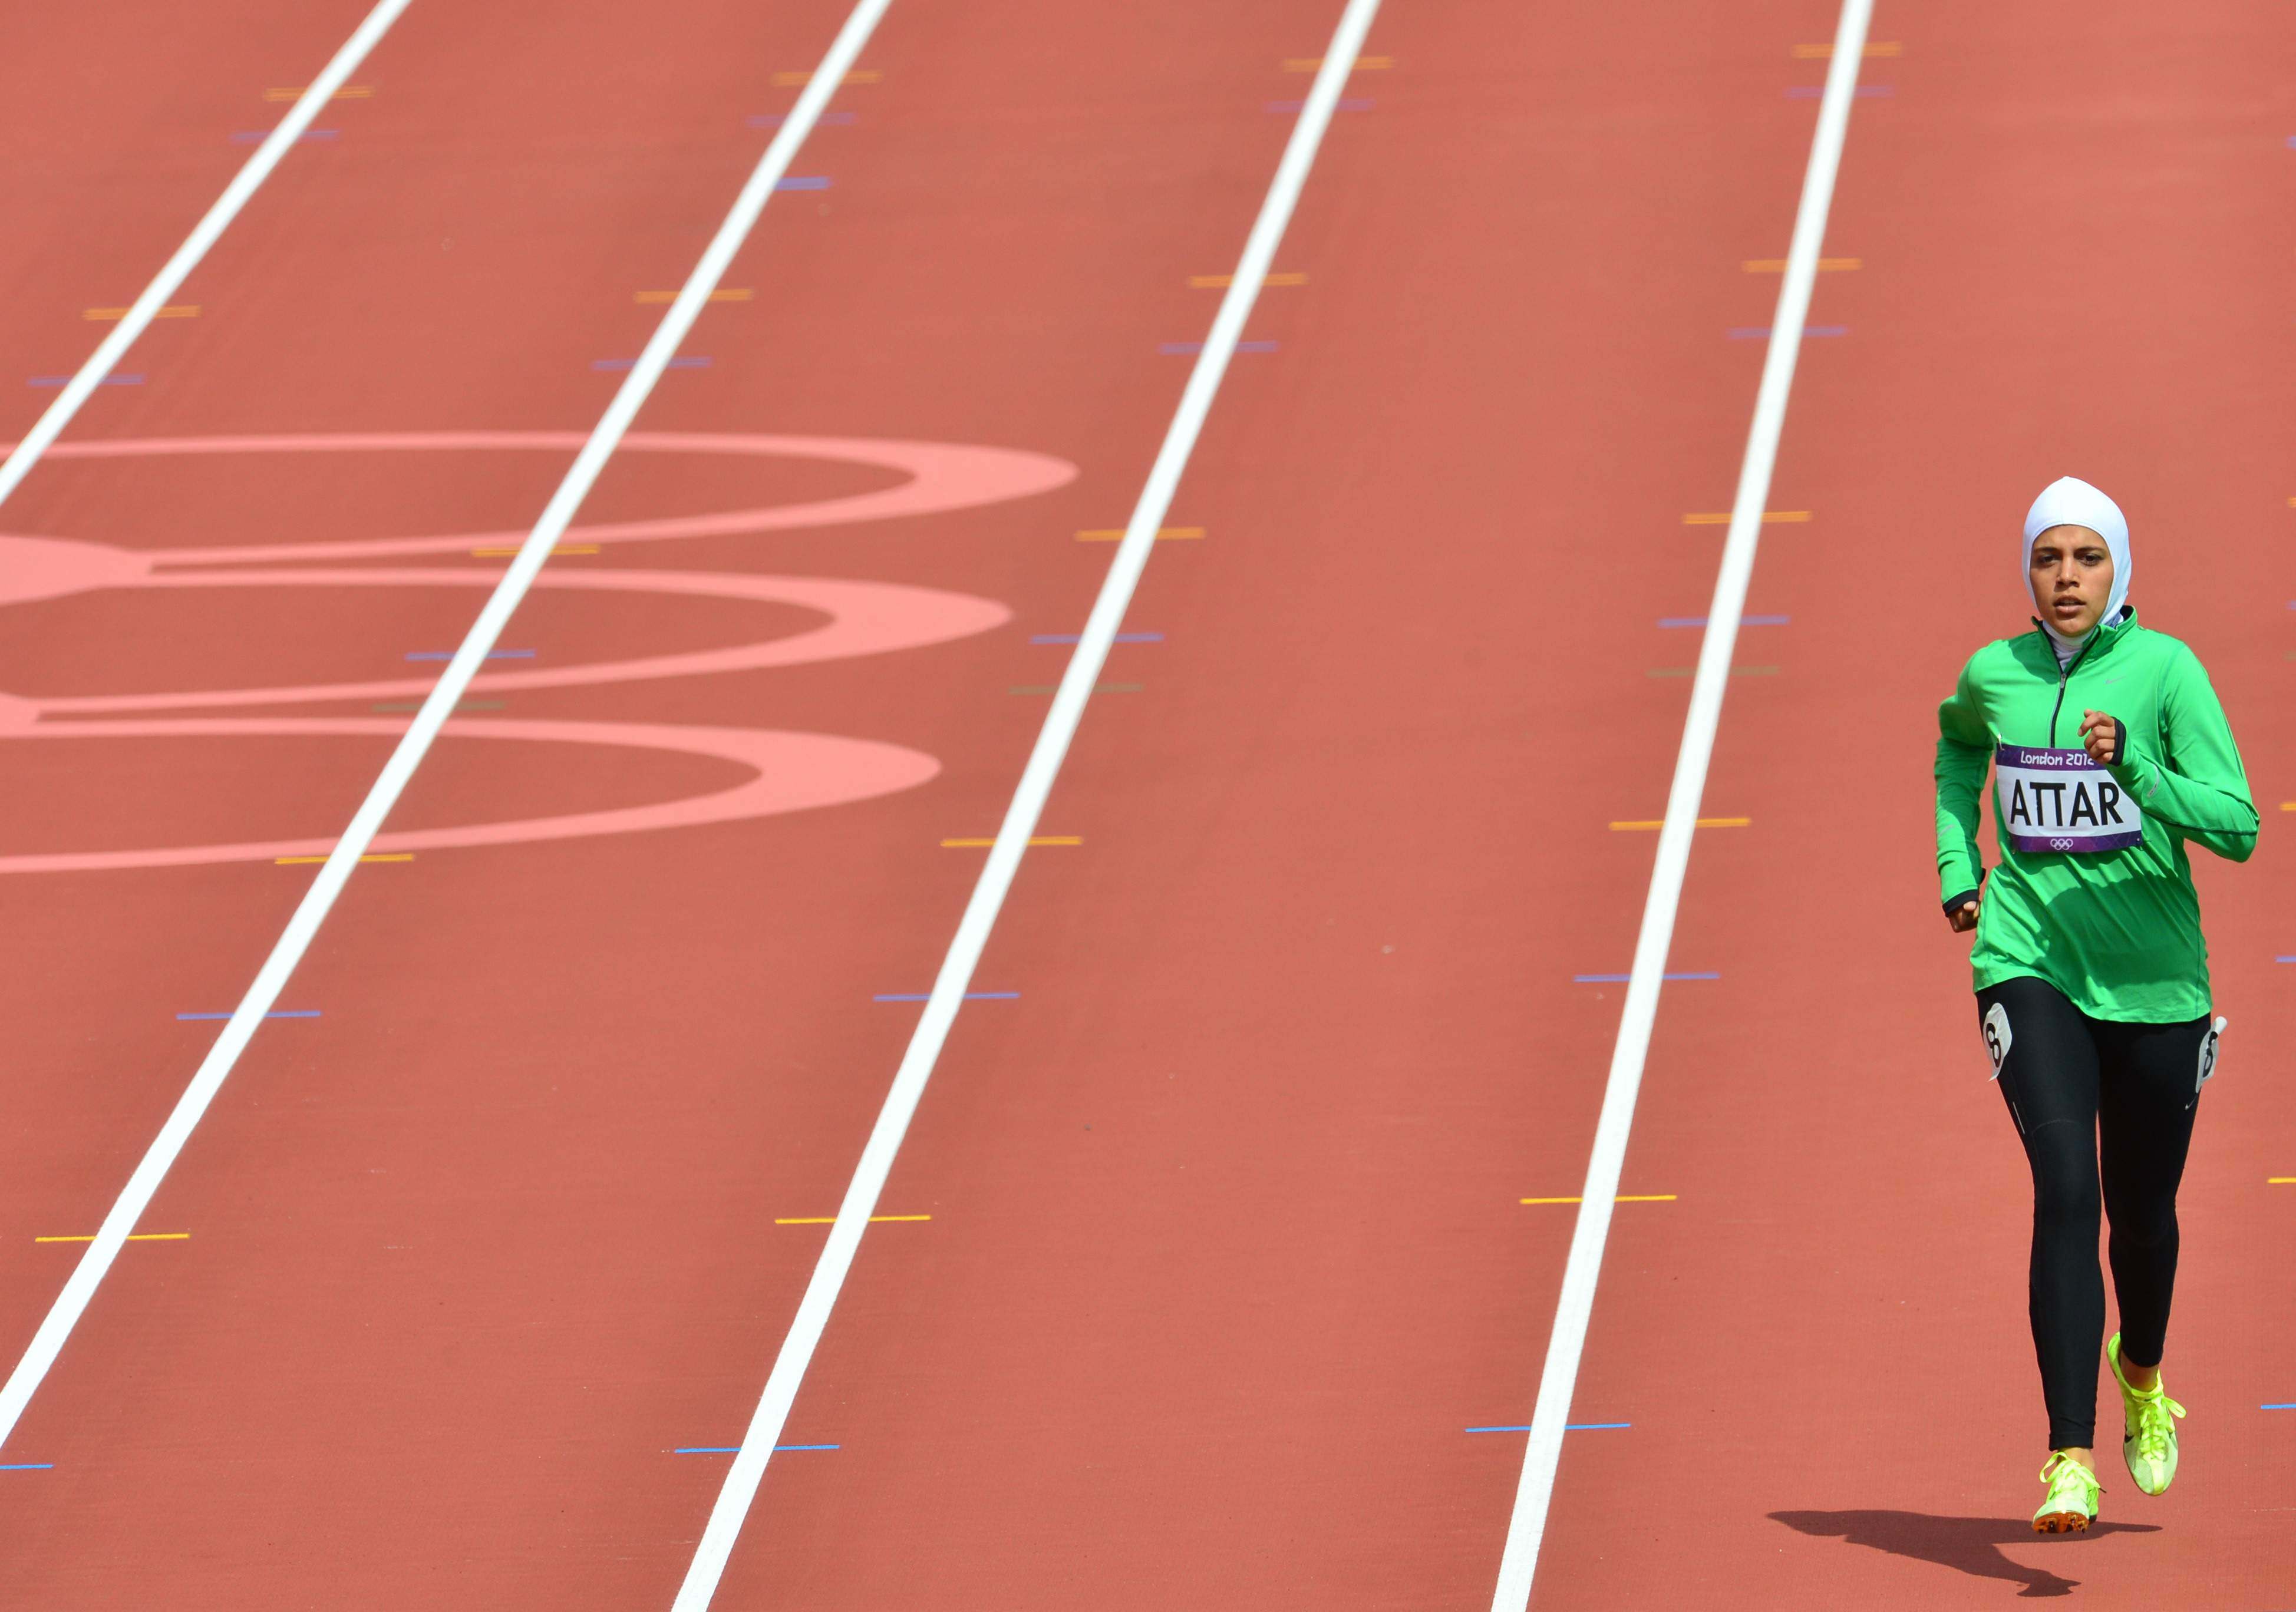 Saudi Arabia's Sarah Attar competes in the women's 800m heats at the athletics event of the London 2012 Olympic Games on Aug. 8, 2012.